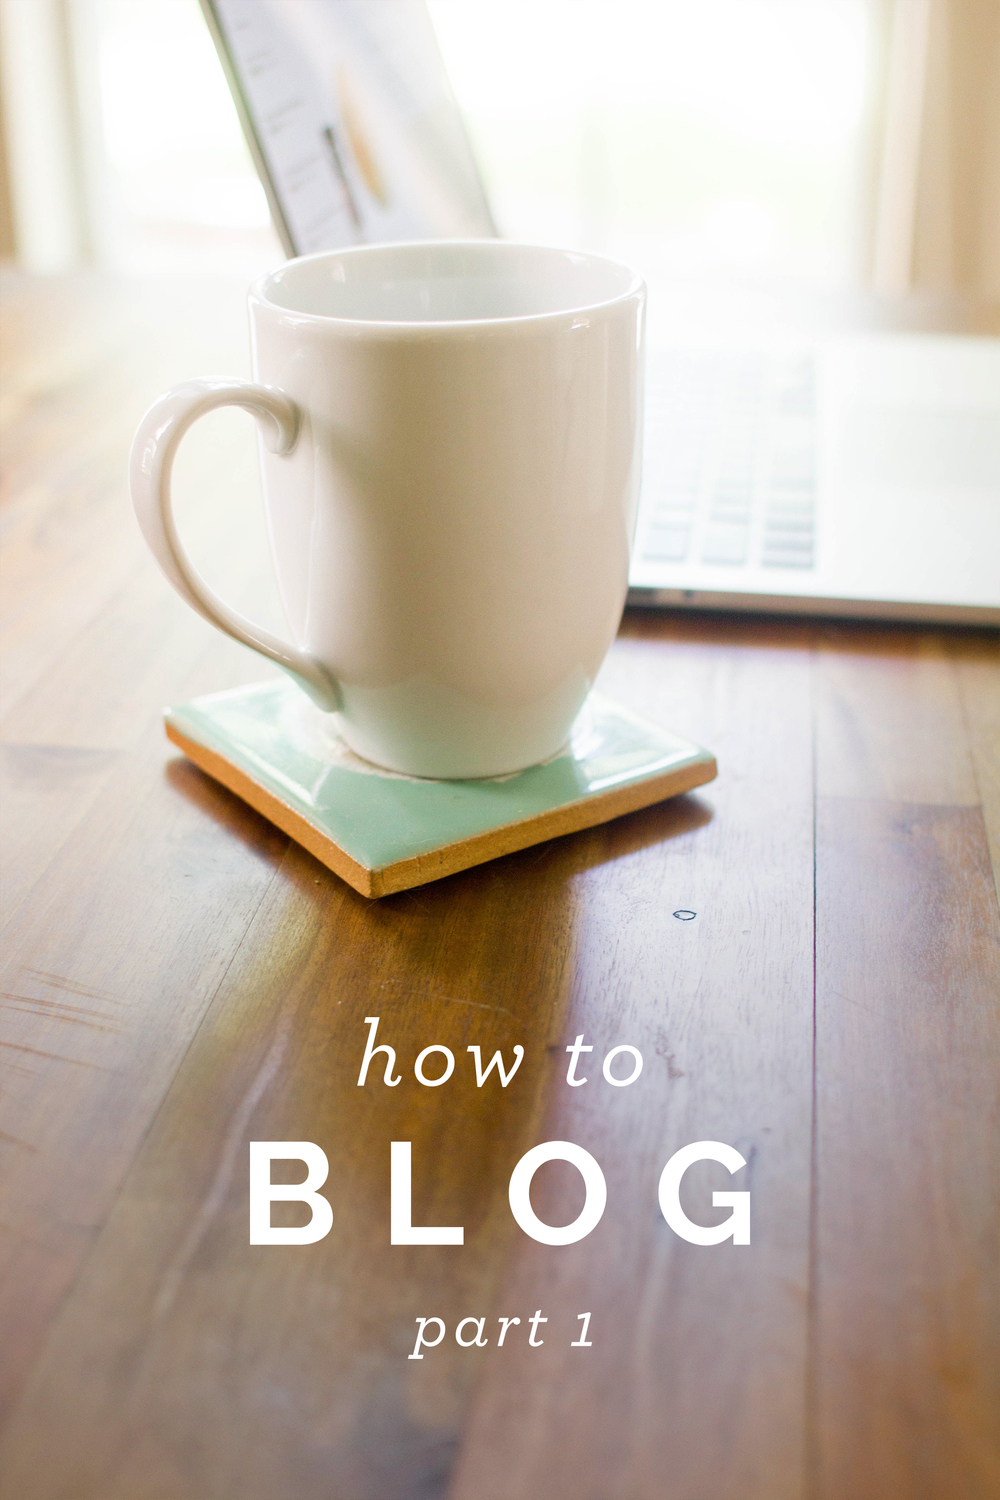 How to Blog, Part 1 - that's pretty ace